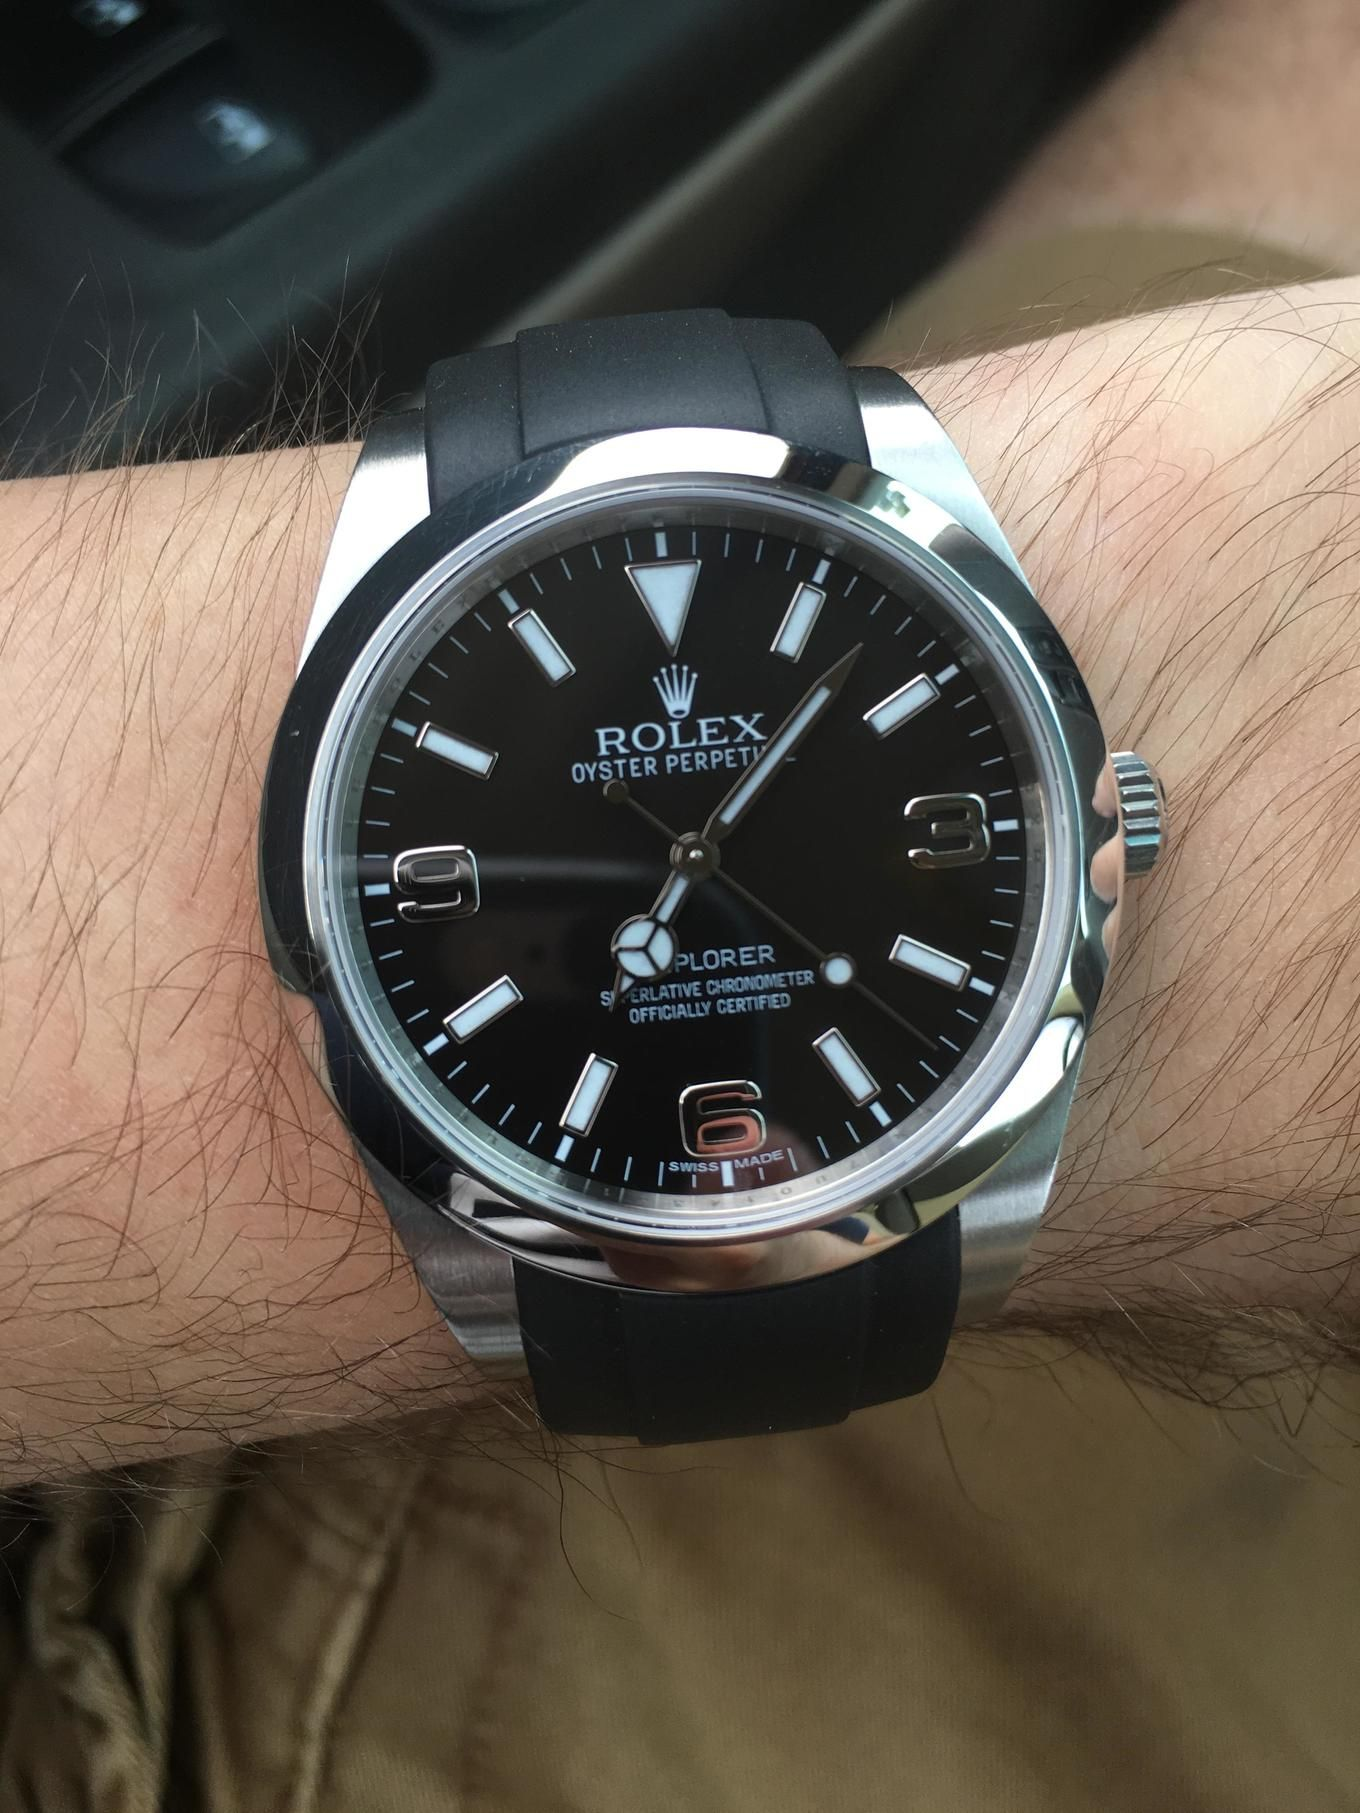 Rolex Explorer 1 with Everest,brand black rubber strap. in